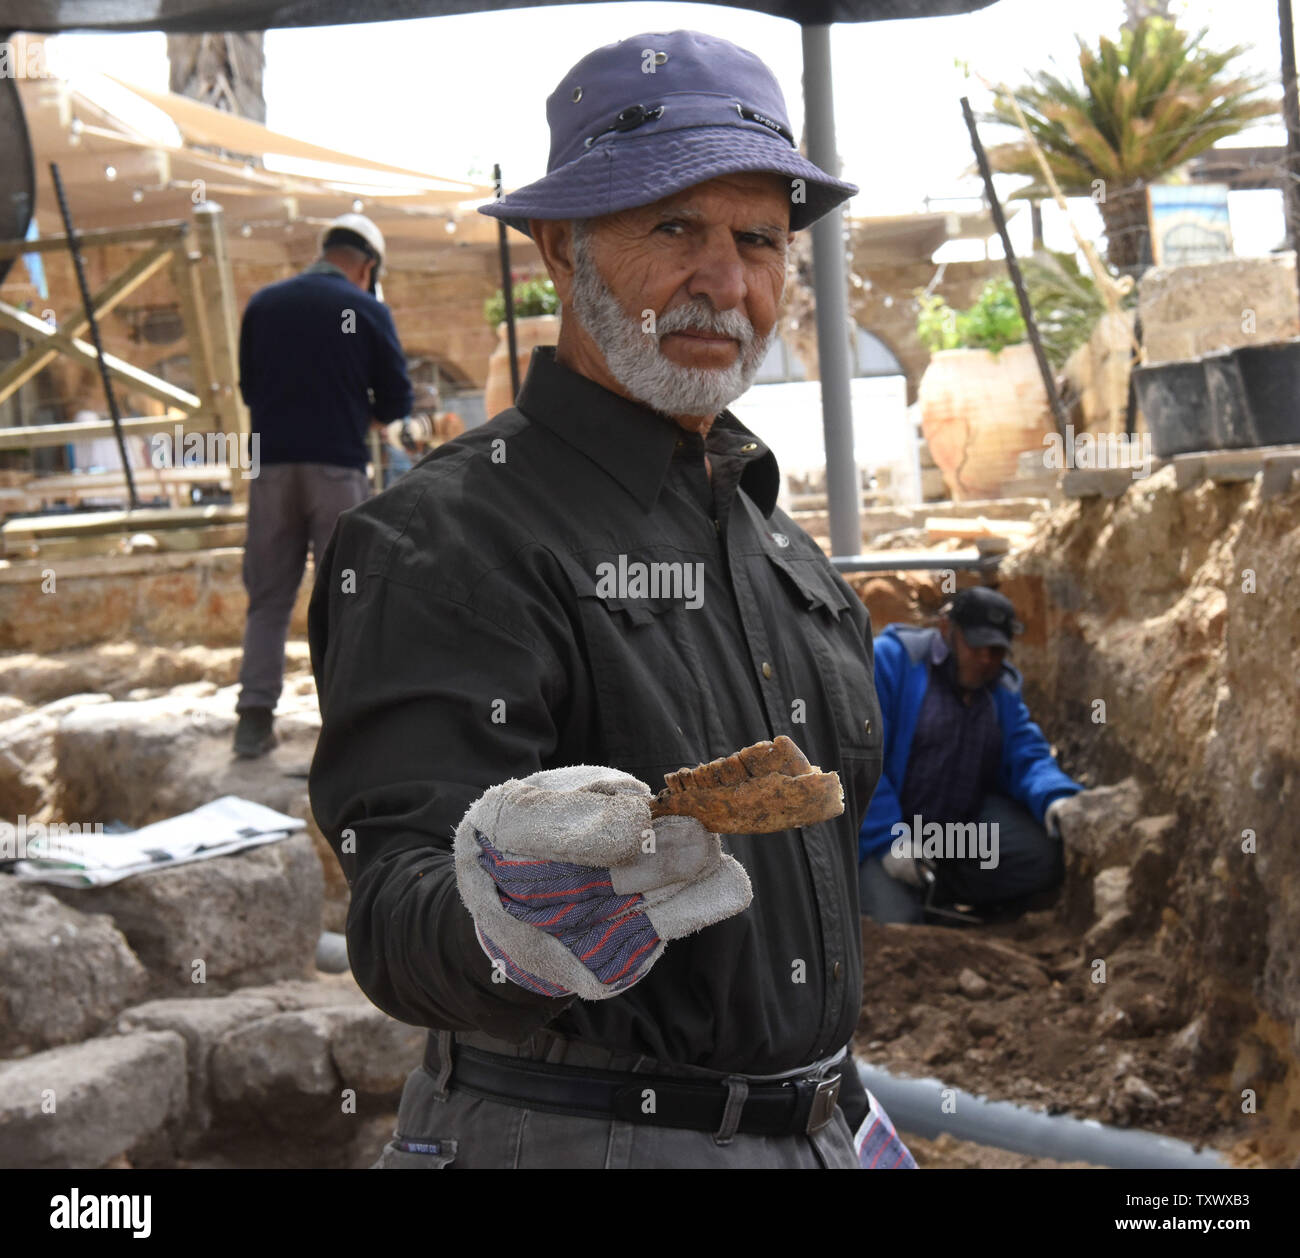 An Israel Antiquities worker shows the teeth of an animal that he found while excavating a section of 'Roma and Augusta Temple' in Caesarea, Israel, April 26, 2017. The Temple was constructed in the first century by King Herod in honor of Augustus Caesar. The Edmond de Rothschild Foundations is investing approximately $275,000 to expose and restore Caesarea's hidden treasures.  Photo by Debbie Hill/UPI - Stock Image